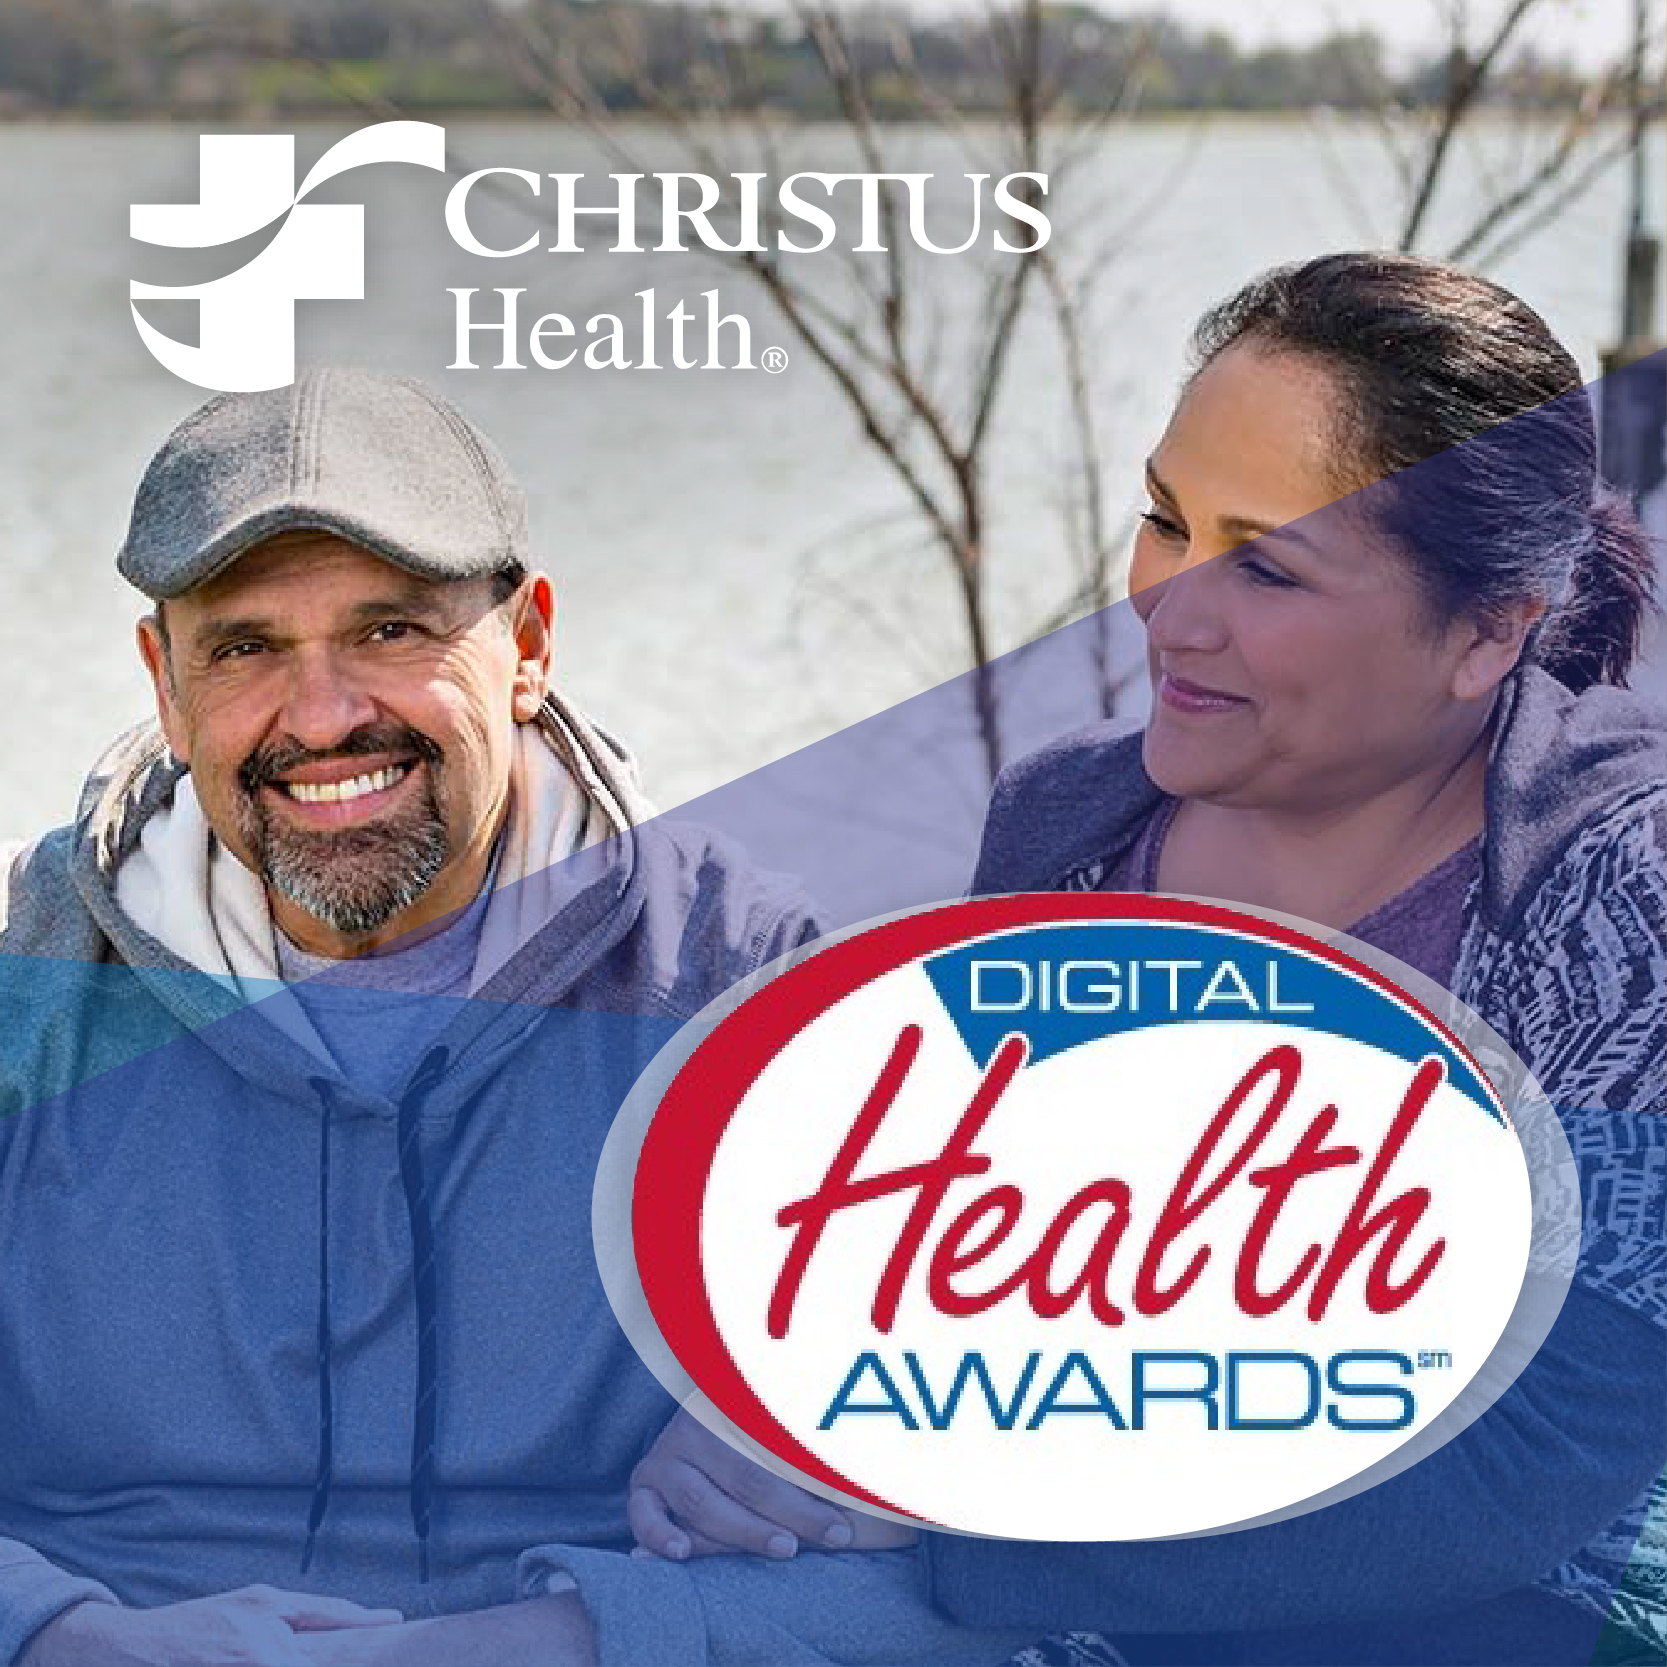 a man and woman with Digital Health Awards and Christus Health logos